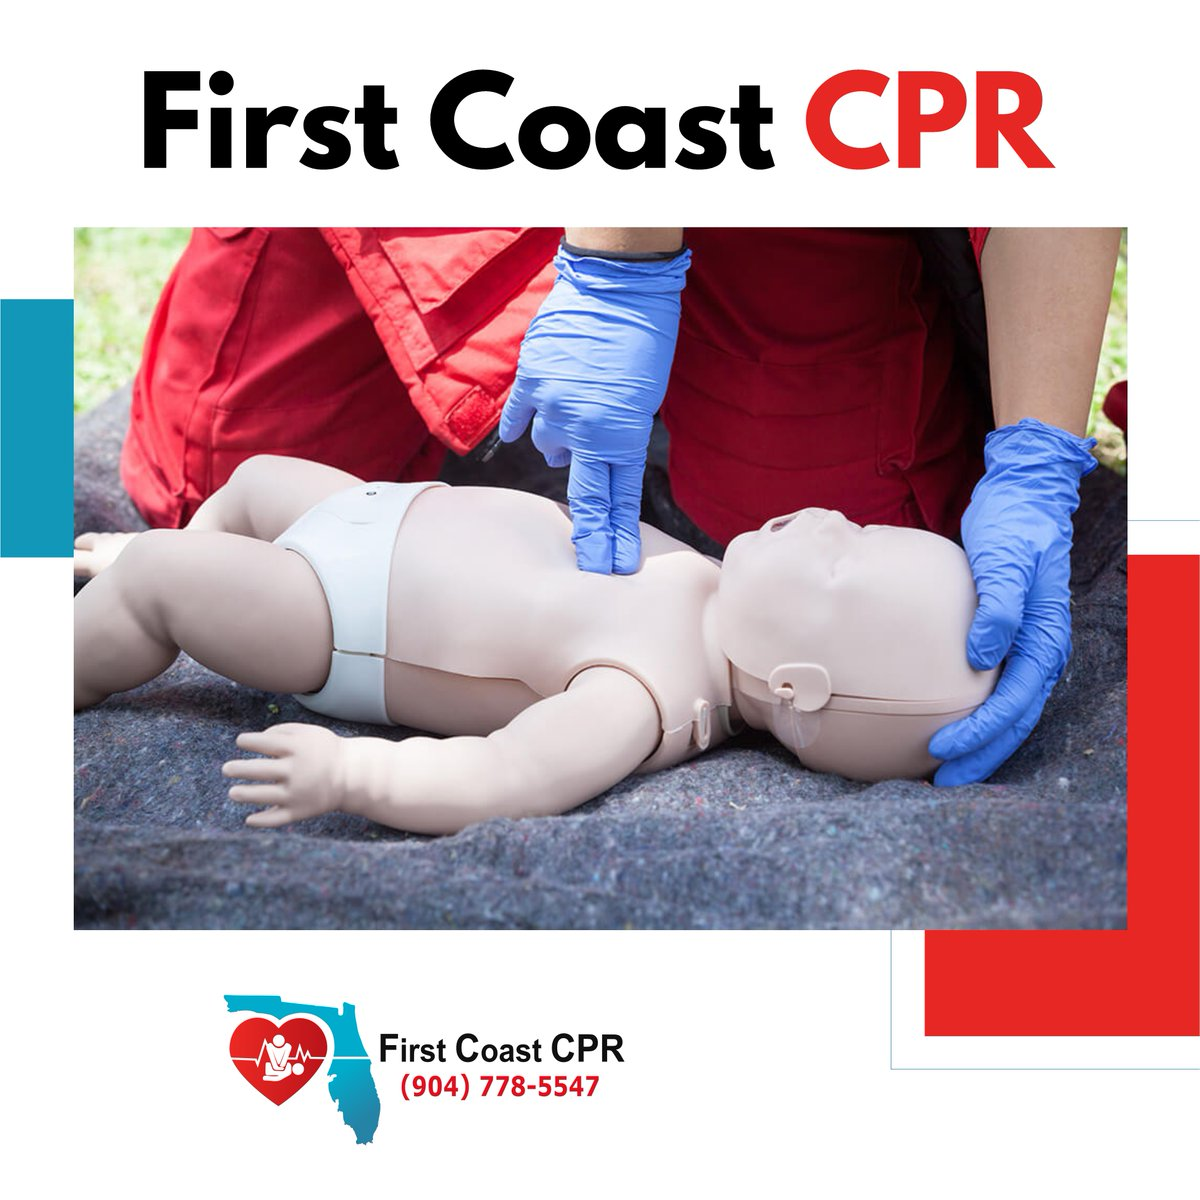 We are an official training site for the American Heart Association. We offer Advance Cardiac Life Support (ACLS) & Basic Life Support CPR/AED (BLS). -- http://firstcoastcpr.com  #firstcoastcpr #cpr #firstaid #firstaidtraining #herotrainingcenter #BLS #AED #AHA #cprcetificationpic.twitter.com/igSTBhuote